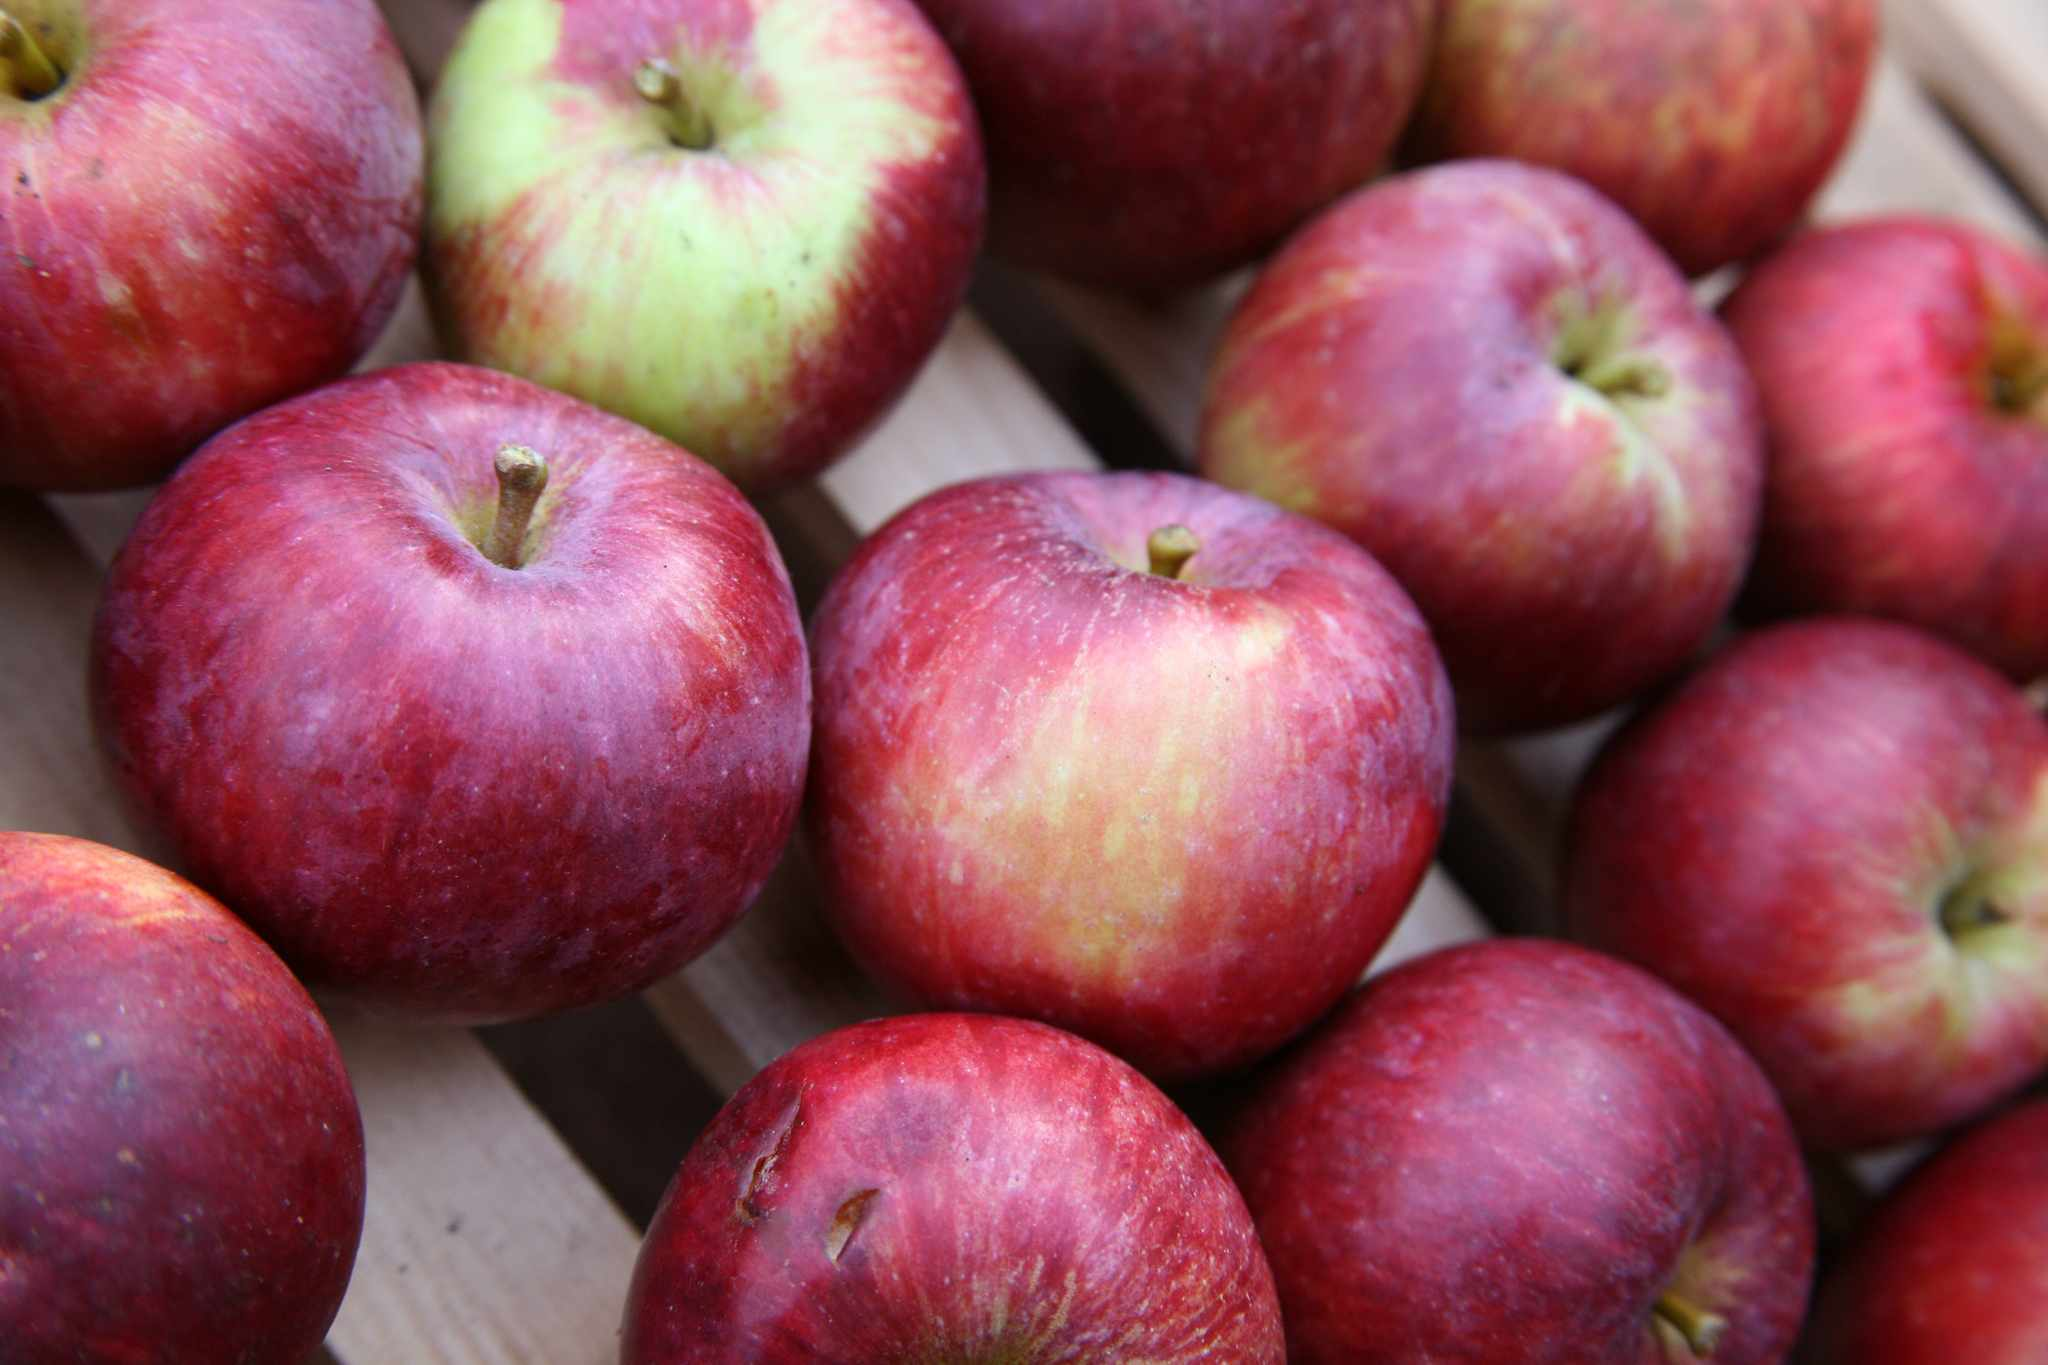 Stored apples